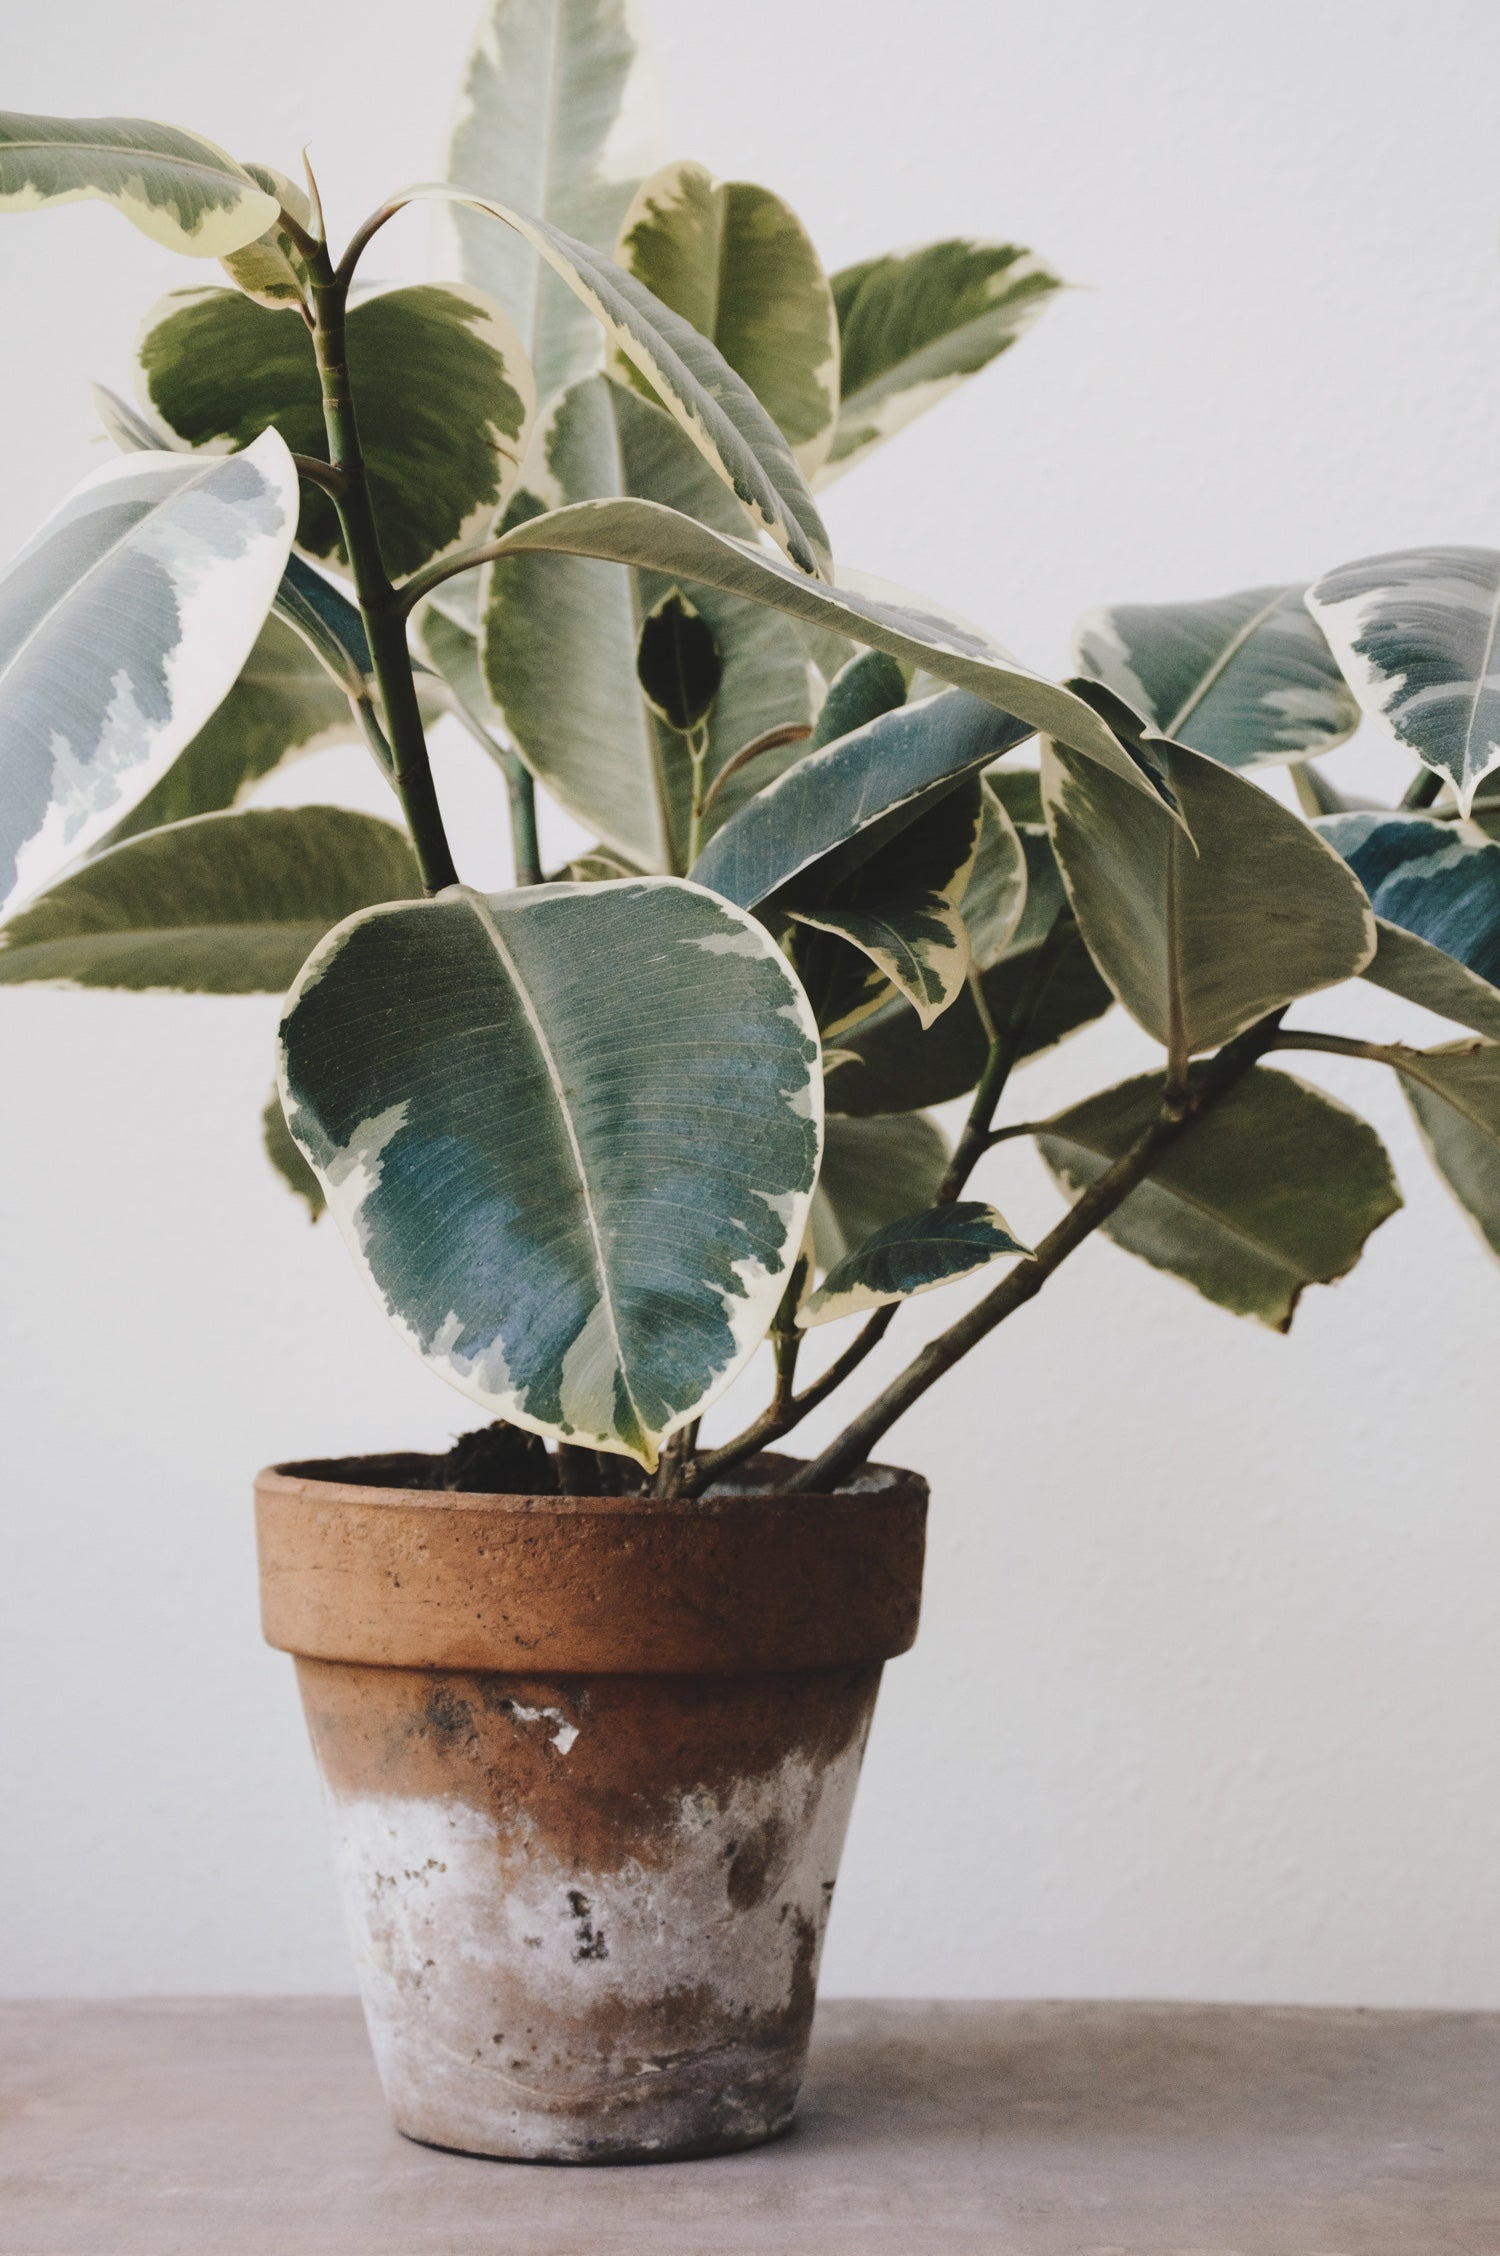 Plants for eco-friendly home